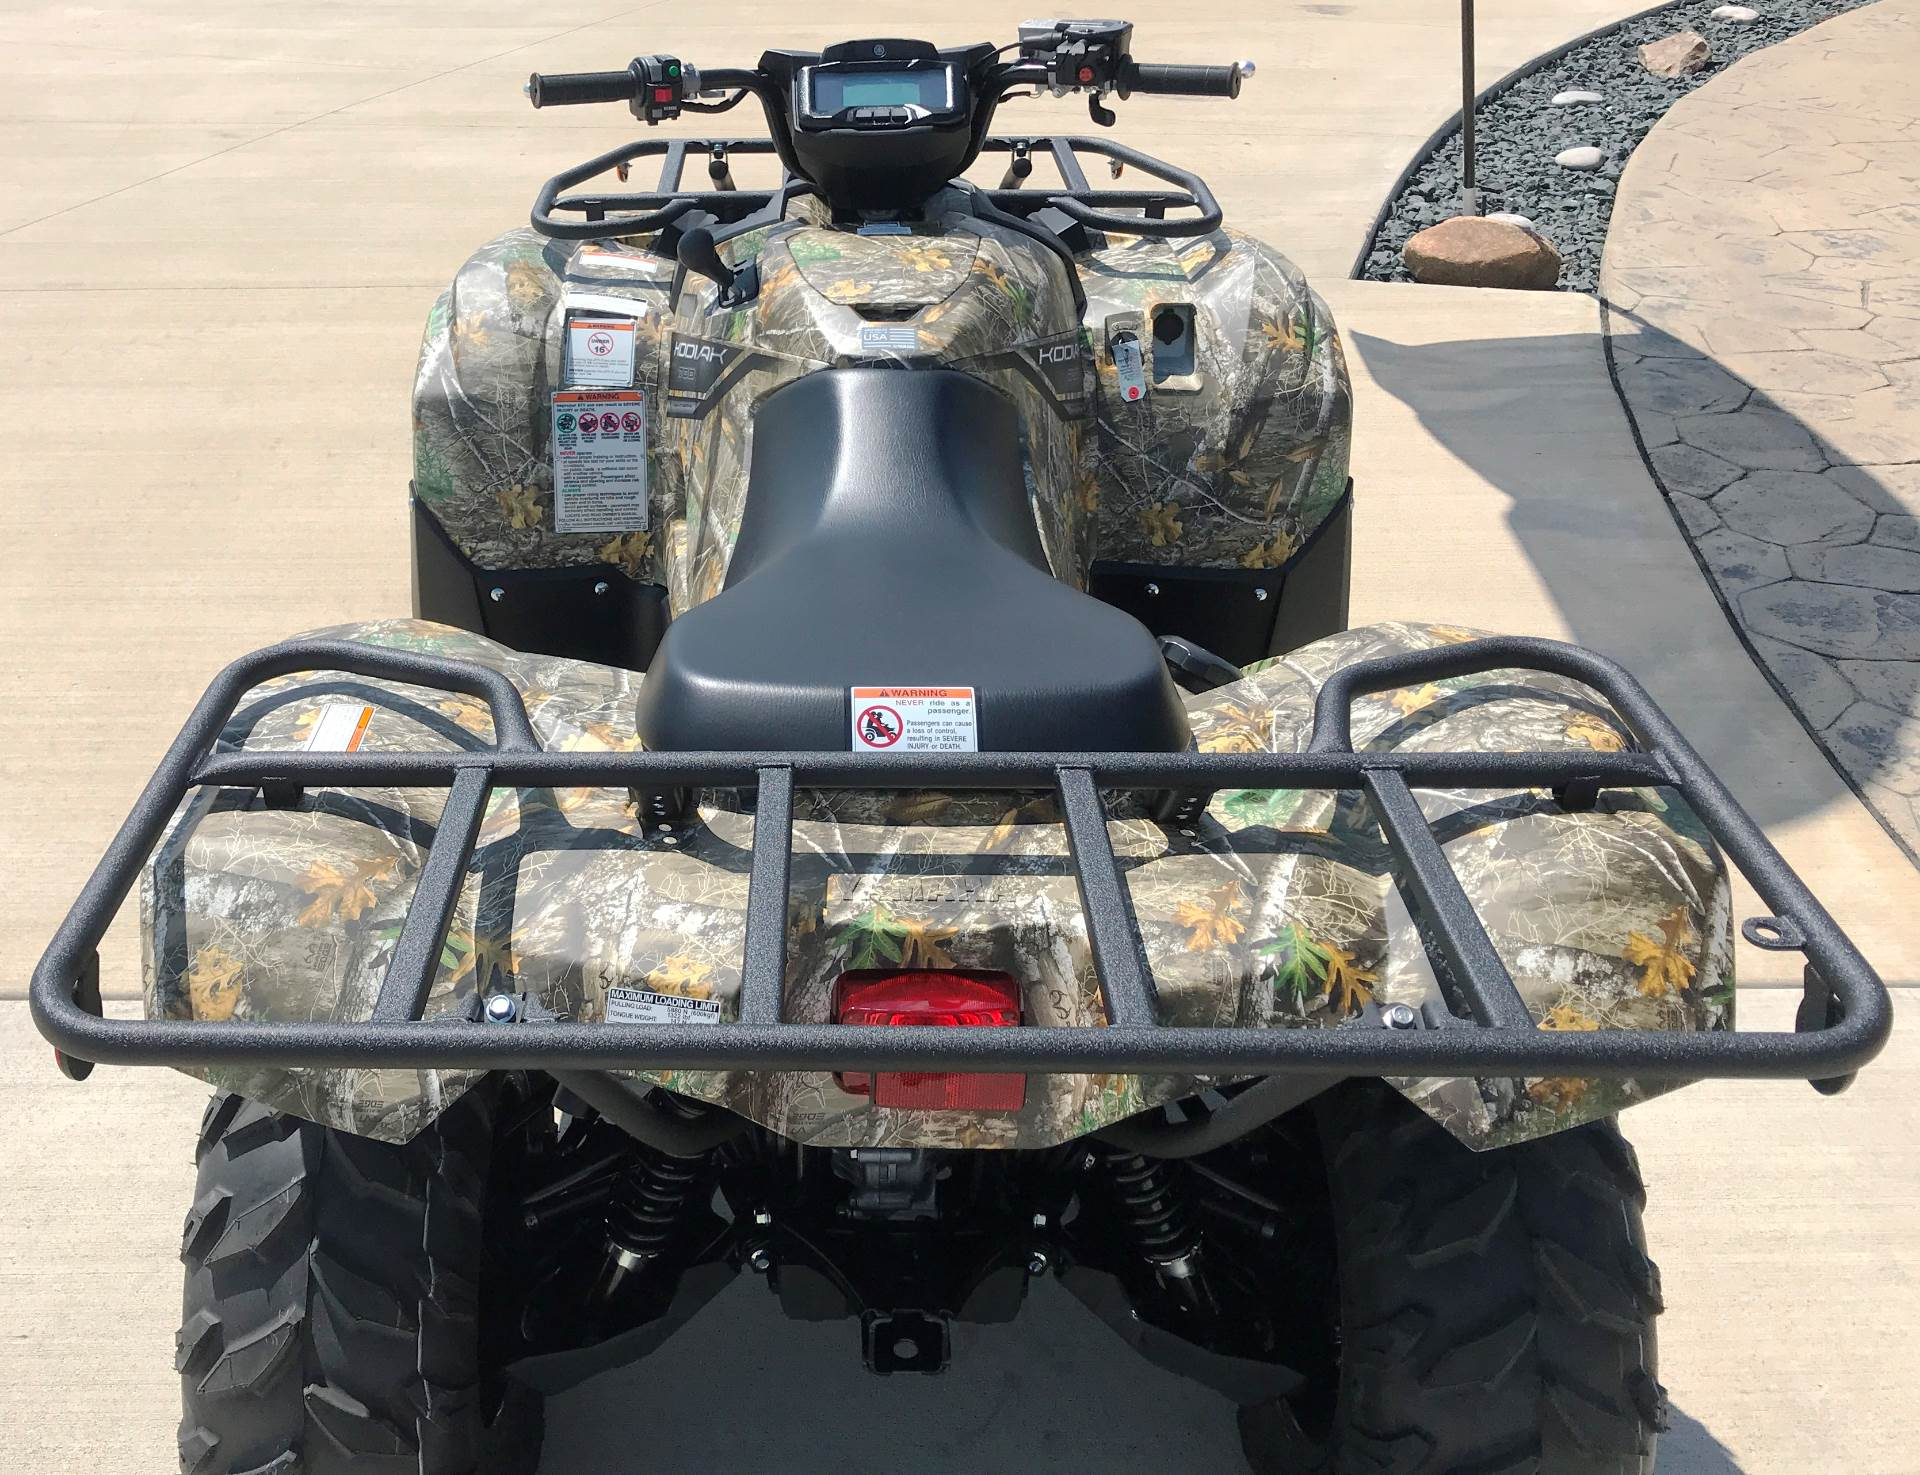 2019 Yamaha Kodiak 700 EPS in Ottumwa, Iowa